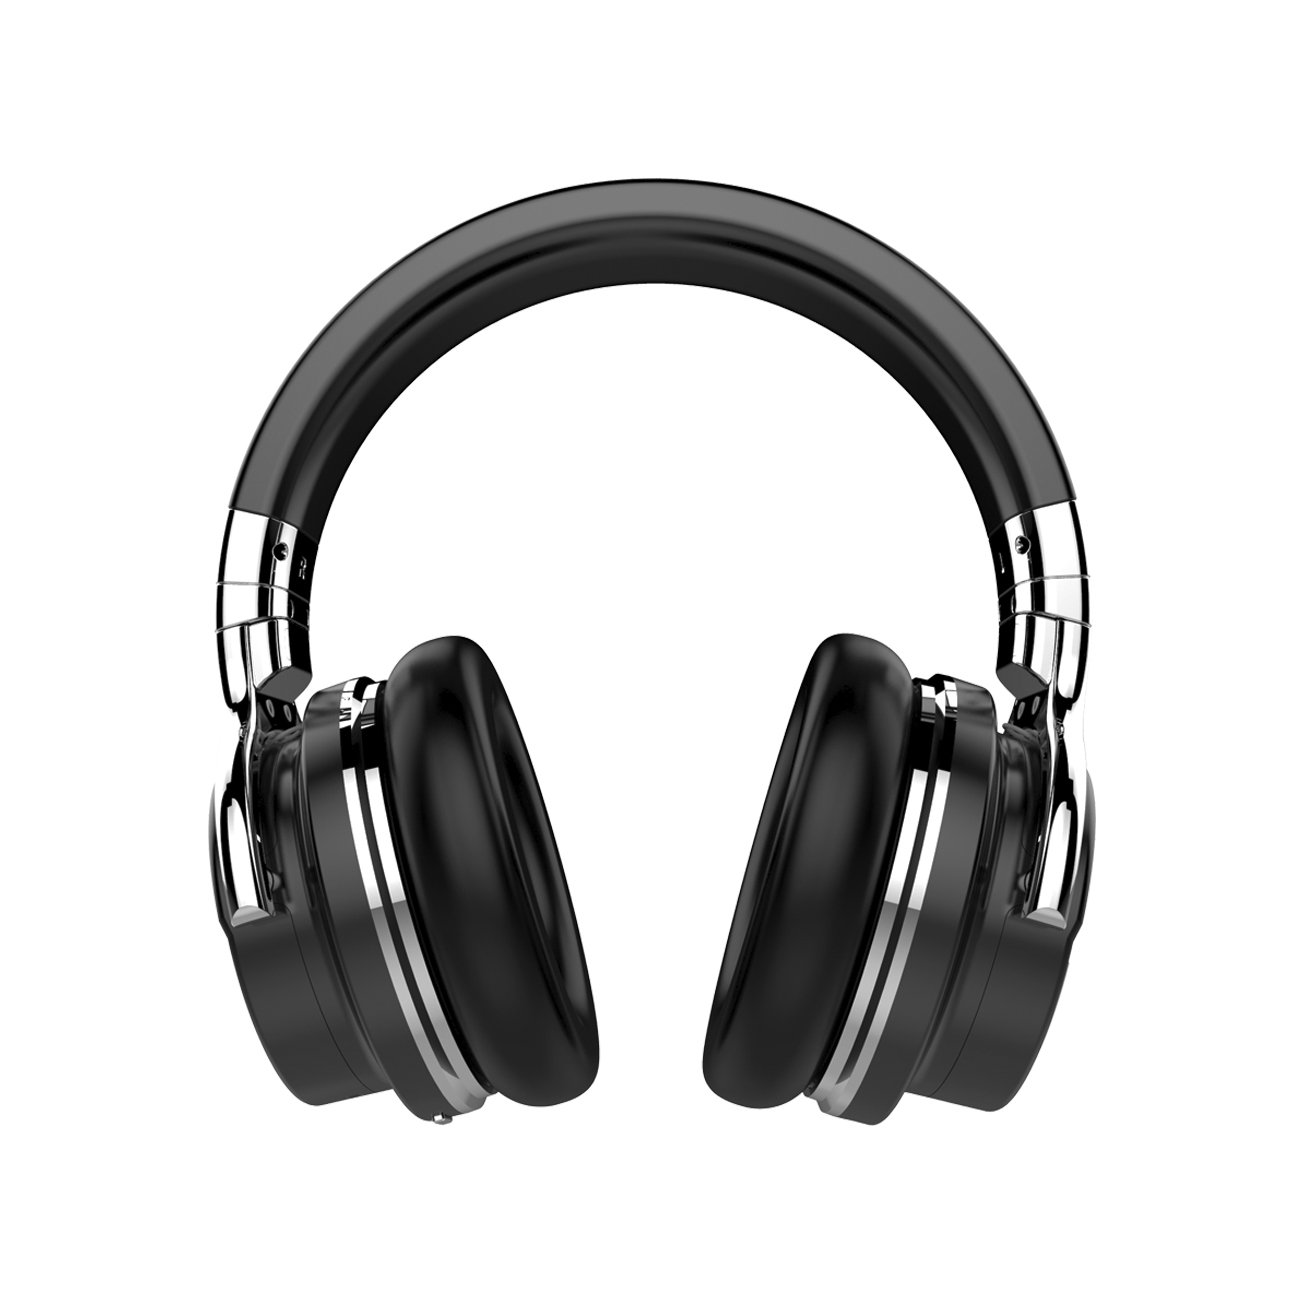 EVOLVEO SupremeSound E7, Bluetooth stereo earphones with microphone]